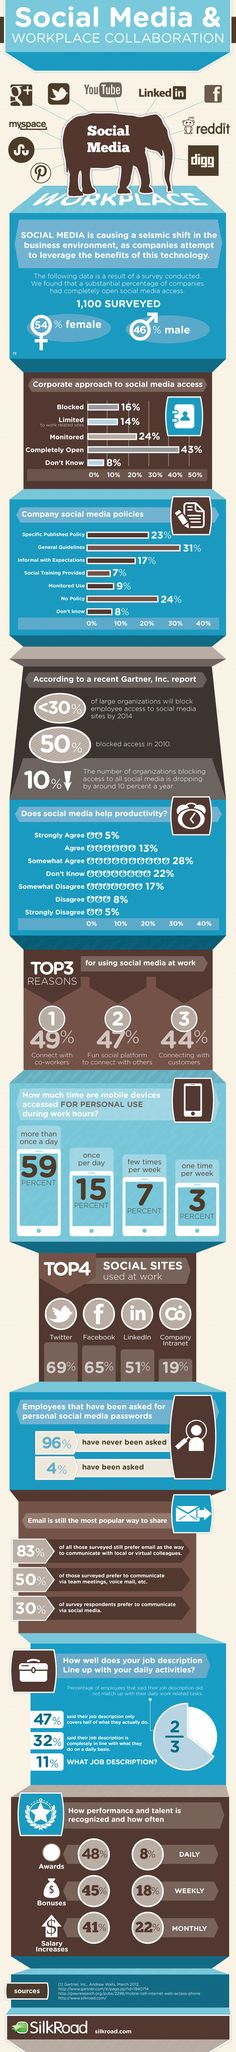 Social media & workplace collaboration [infographic]